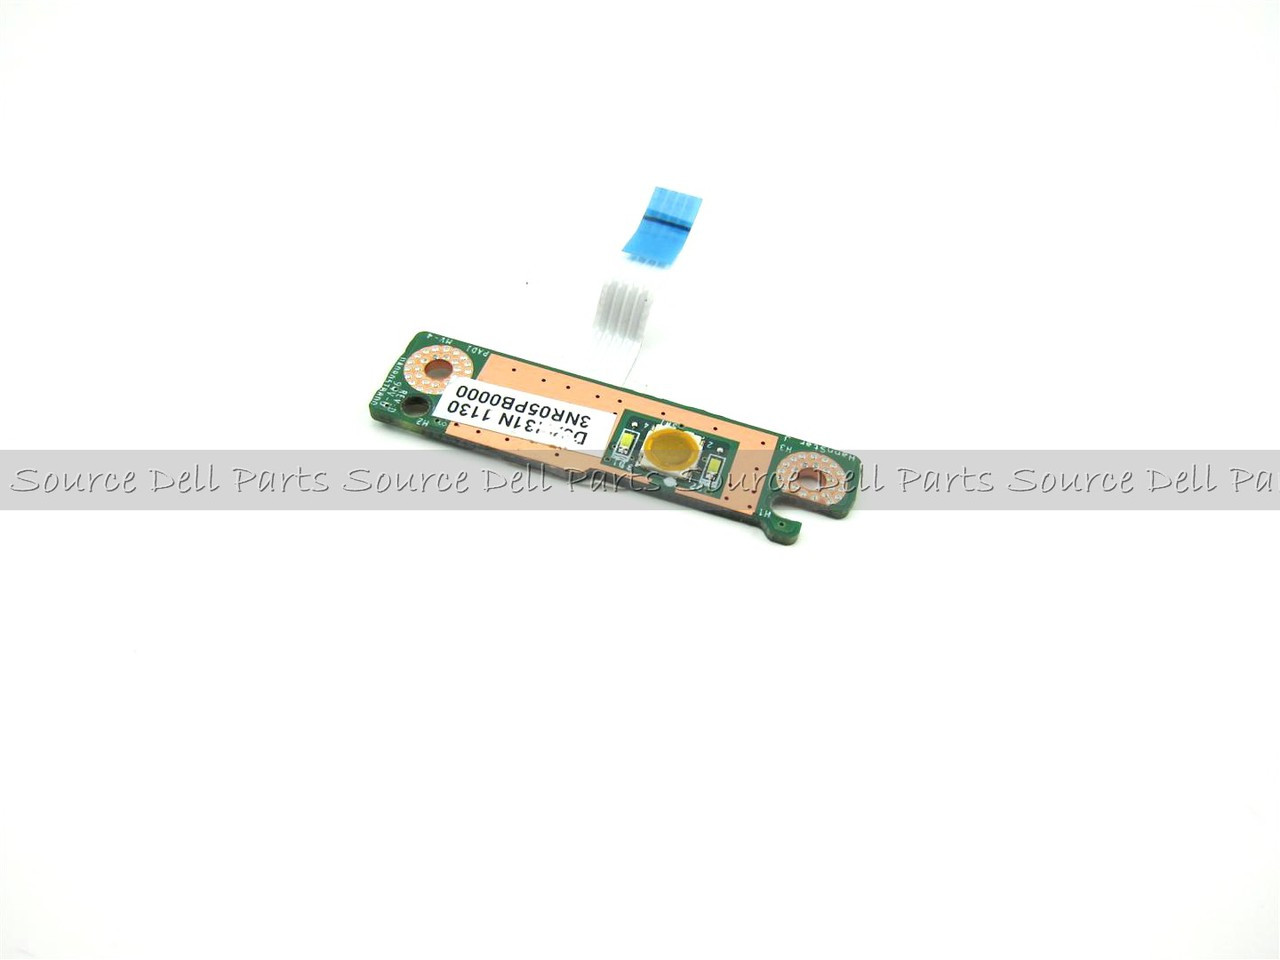 Dell Inspiron 14z (N411z) Power Button Switch with Cable - M6D23